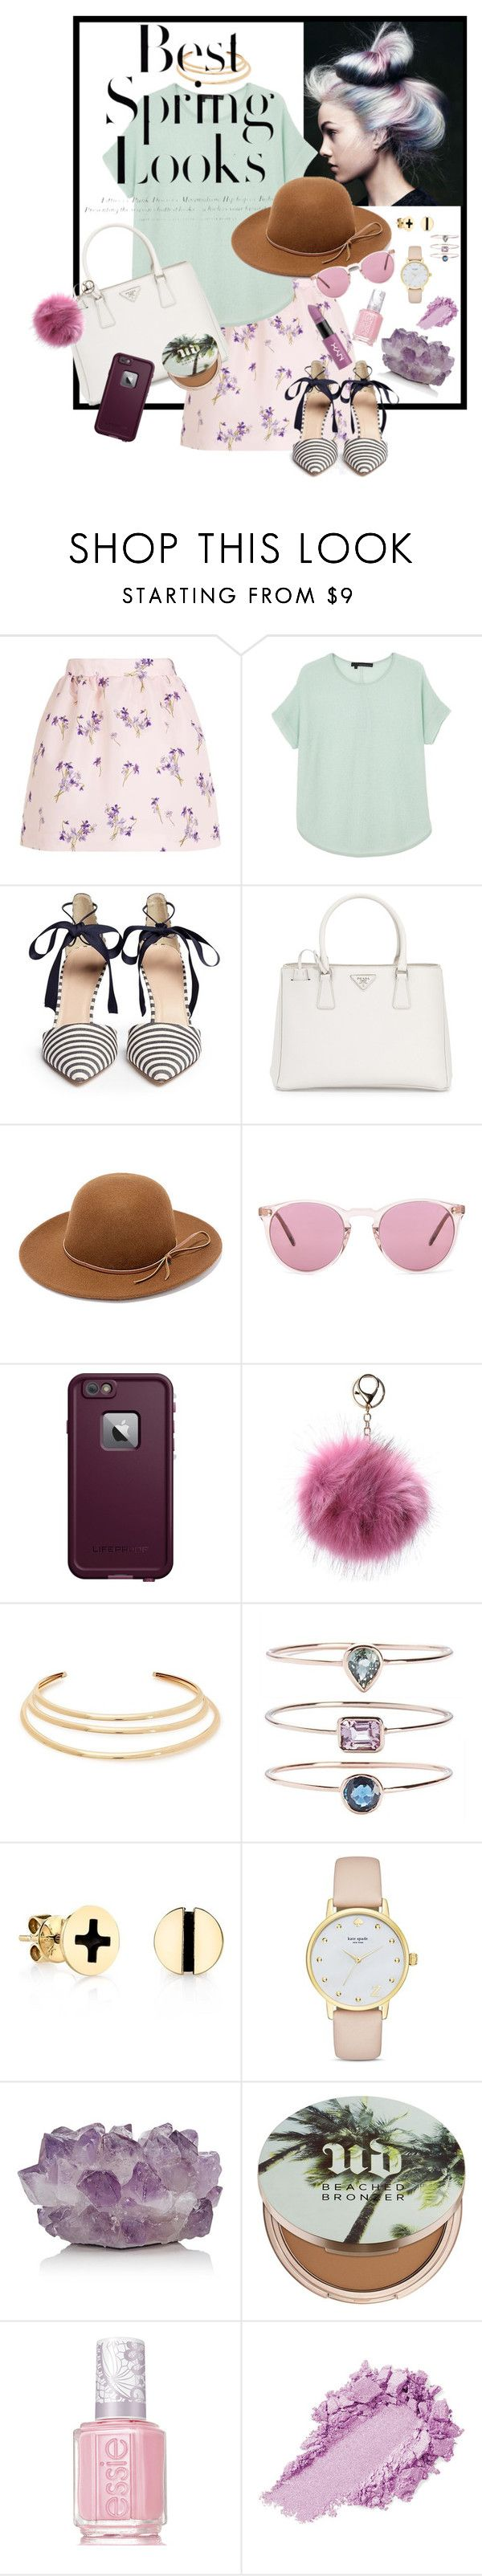 """How To Style: Pastels"" by fashion-mama-aquarius on Polyvore featuring RED Valentino, 360 Sweater, J.Crew, Prada, RHYTHM, Oliver Peoples, LifeProof, Kenneth Jay Lane, 19Fifth and Sydney Evan"